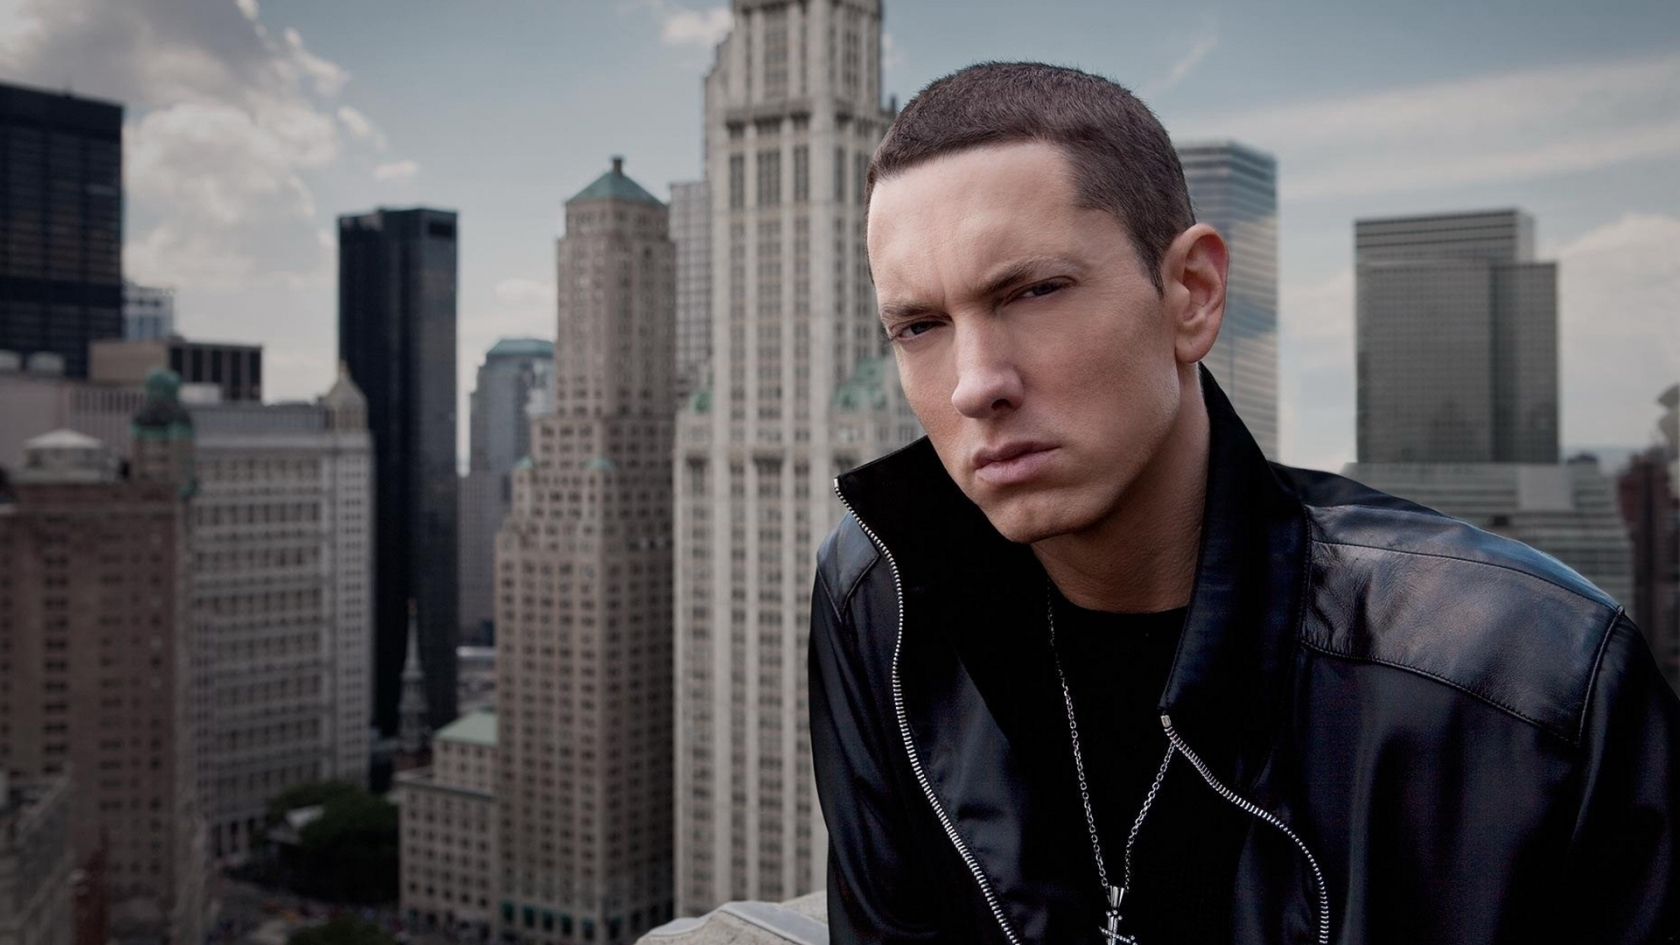 Eminem Close Look for 1680 x 945 HDTV resolution